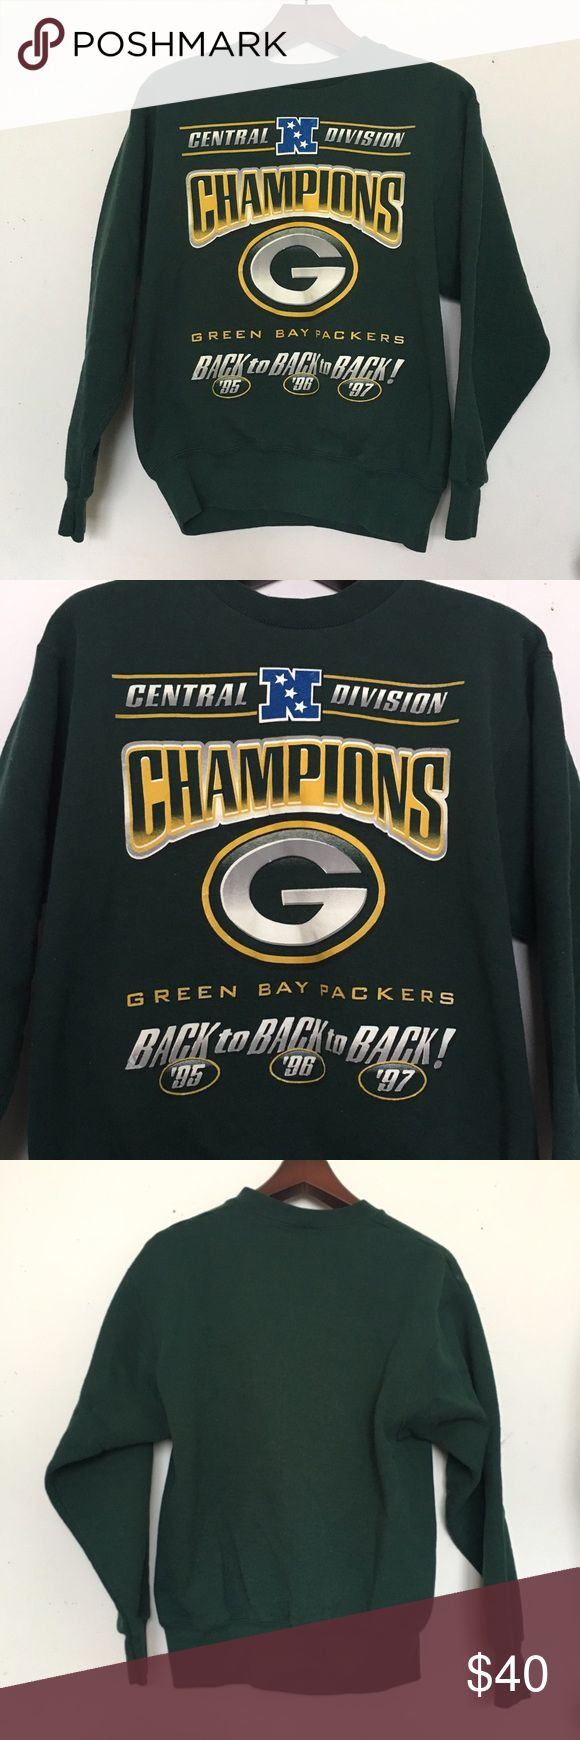 Vintage Green Bay Packers Sweatshirt Green Bay Packers football division championship sweatshirt! In near perfect condition for a 20 year old sweatshirt. Size Small. Vintage Other